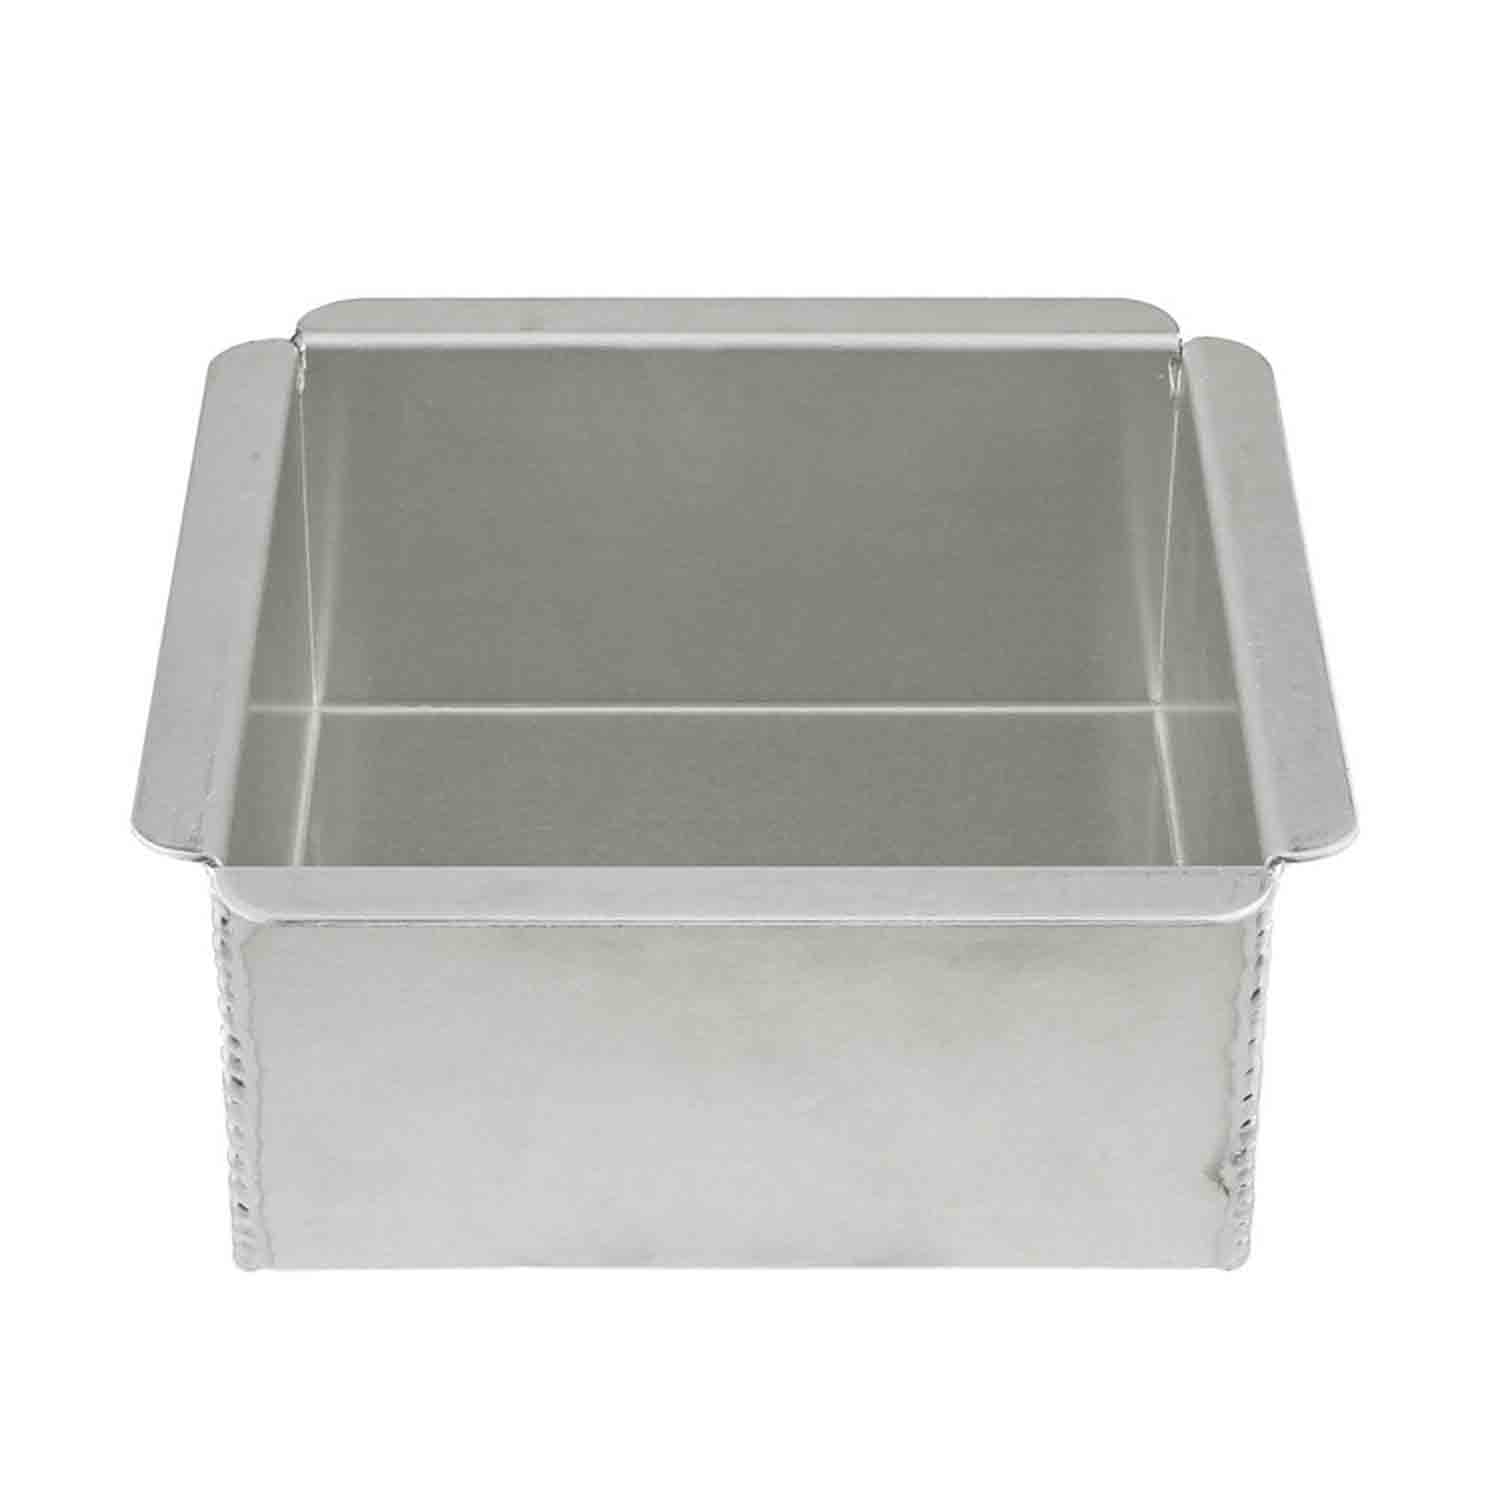 "6 x 3"" Magic Line Square Cake Pan"